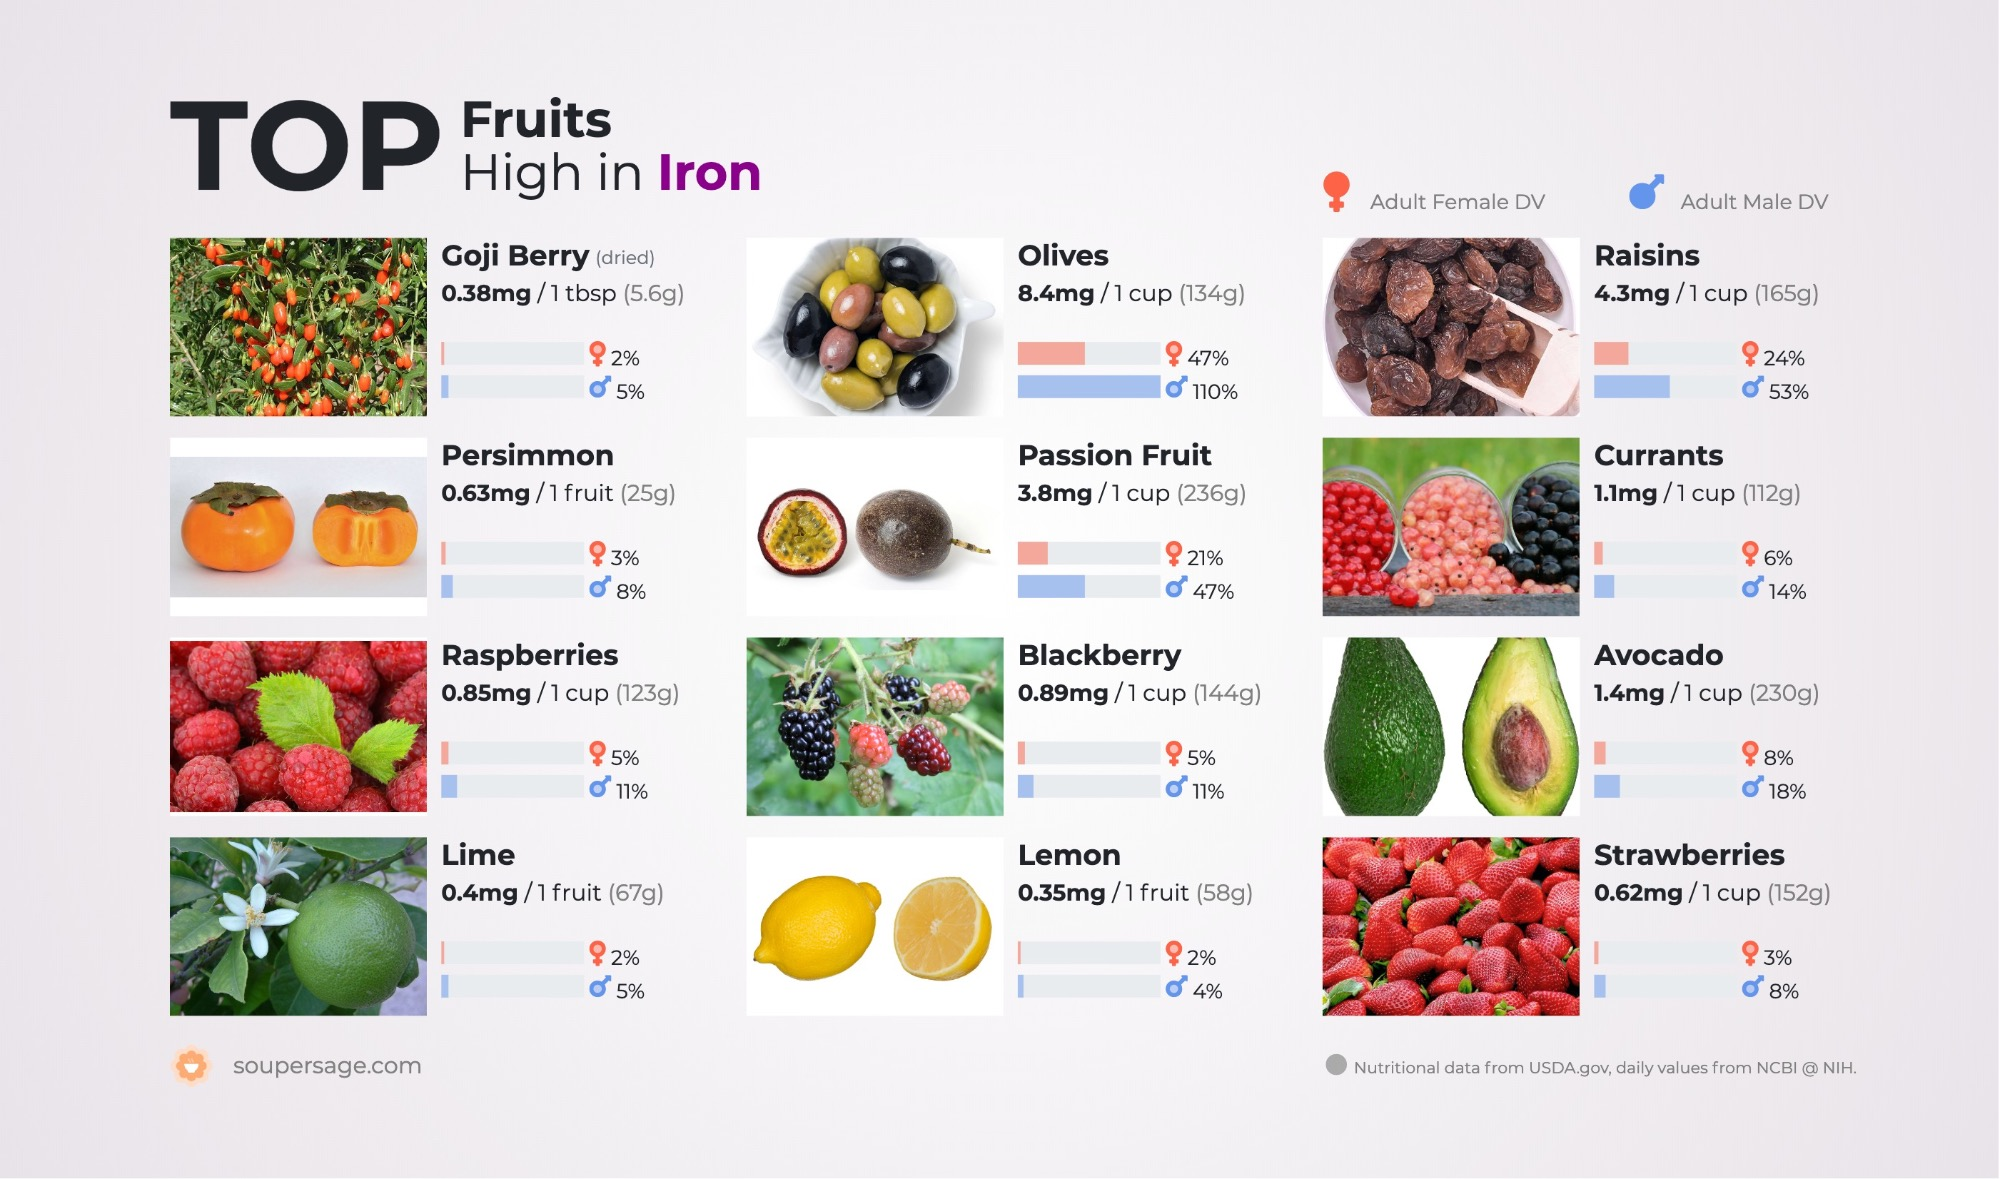 image of Top Fruits High in Iron